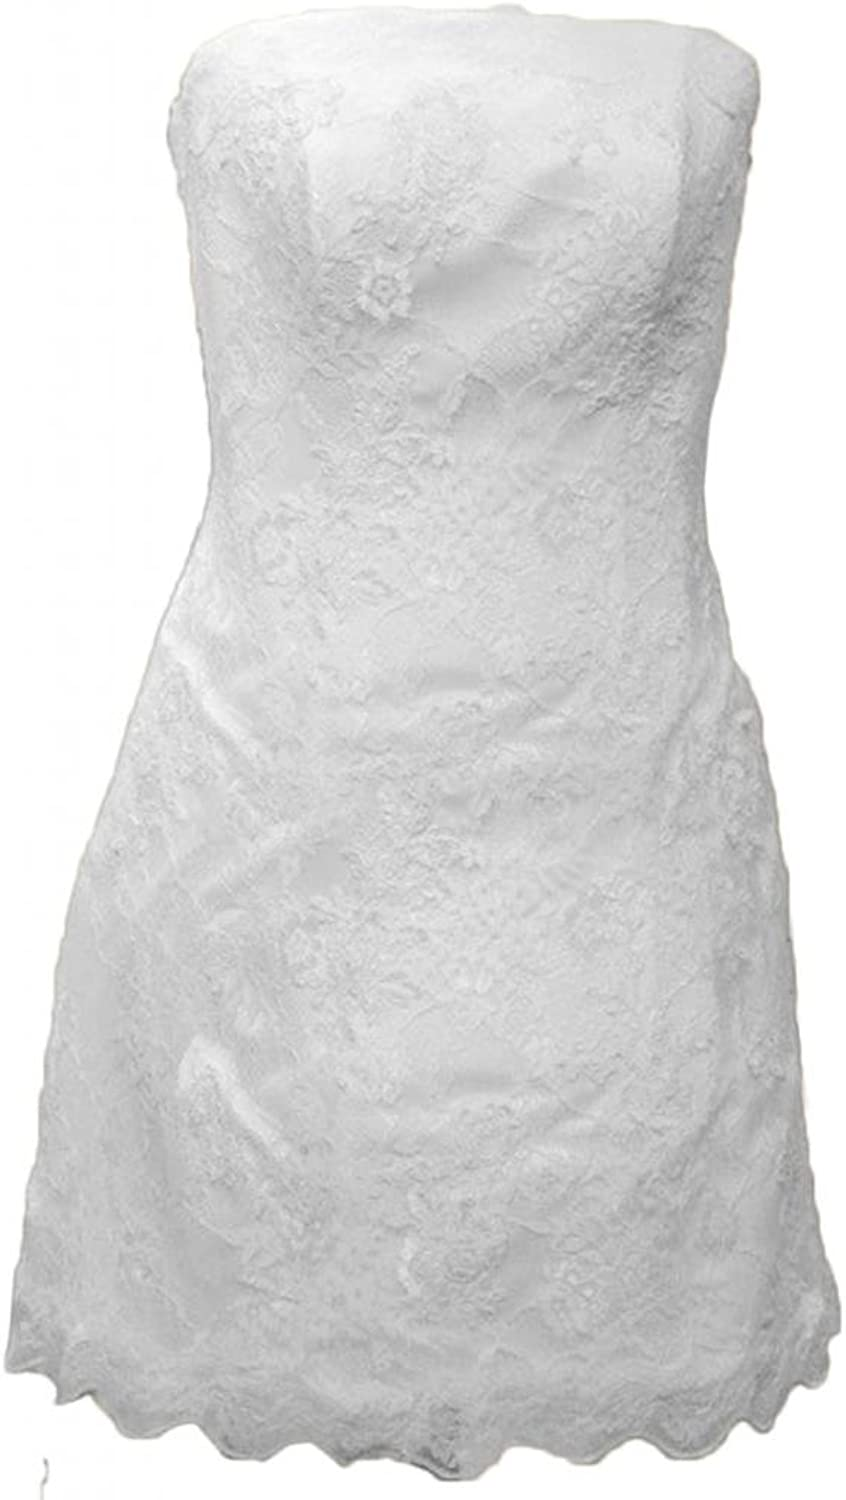 Angel Bride Mini Bridesmaid Party Cocktail Dresses with Strapless